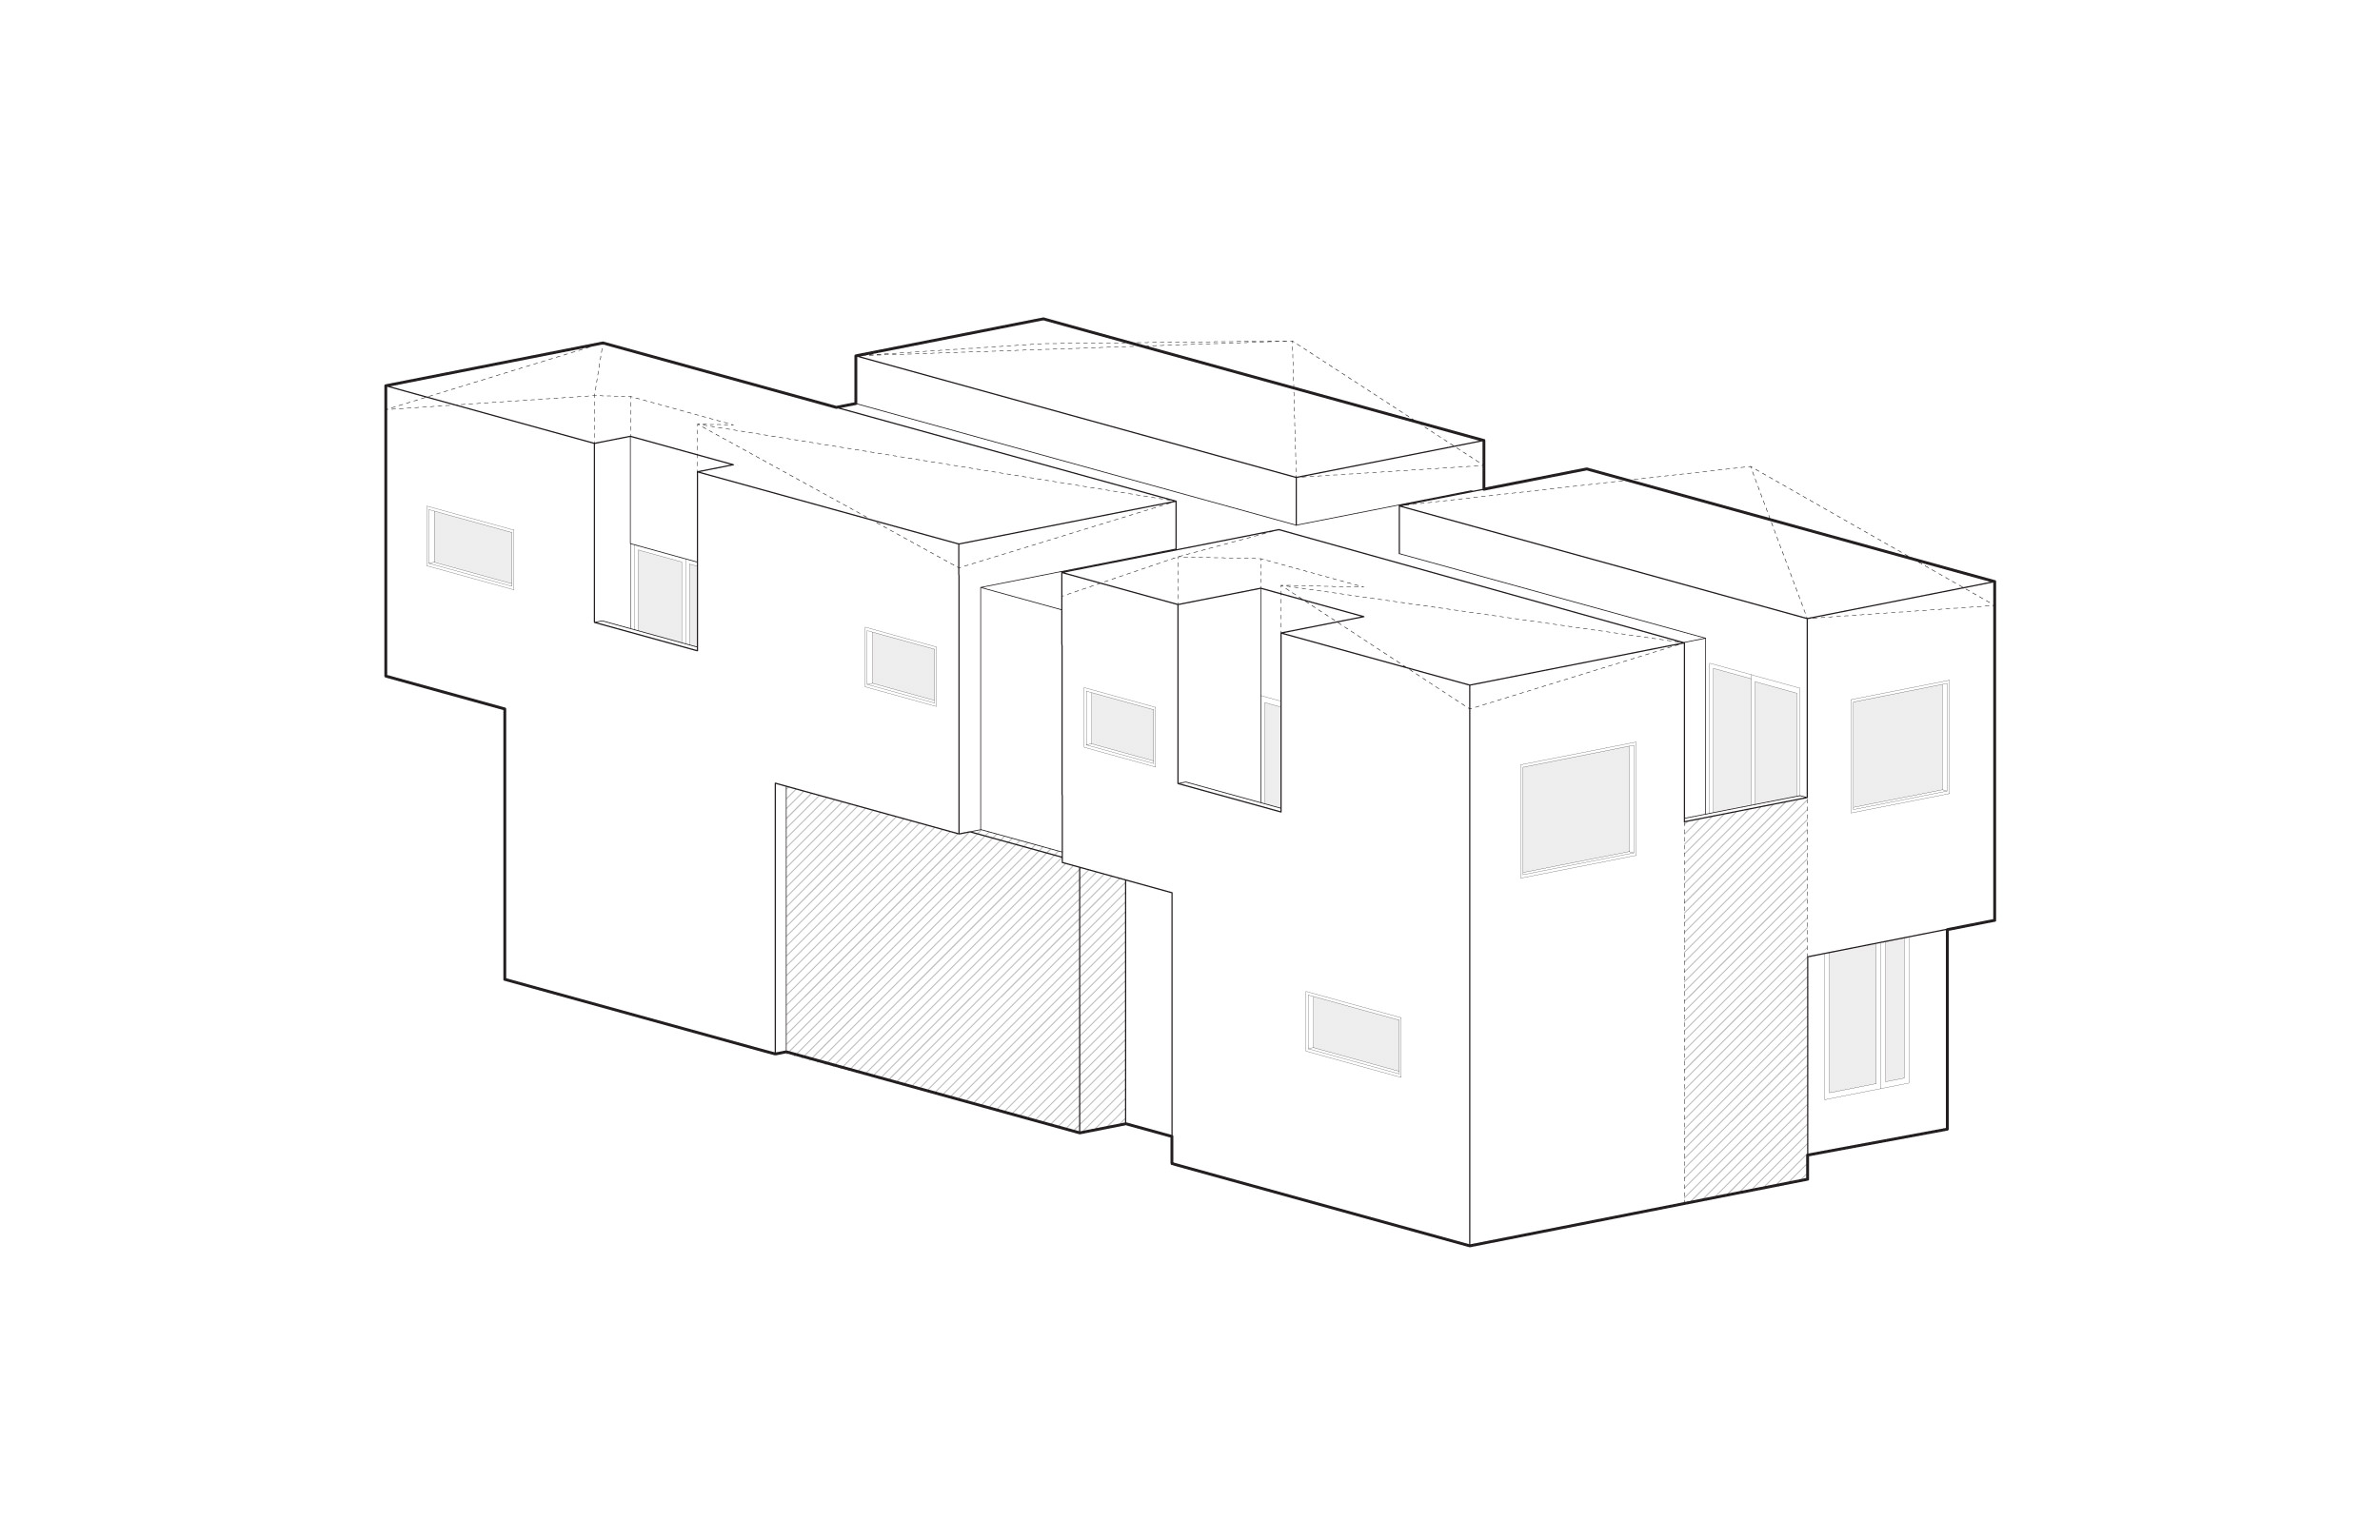 Walls were added to maximize the first-floor area.